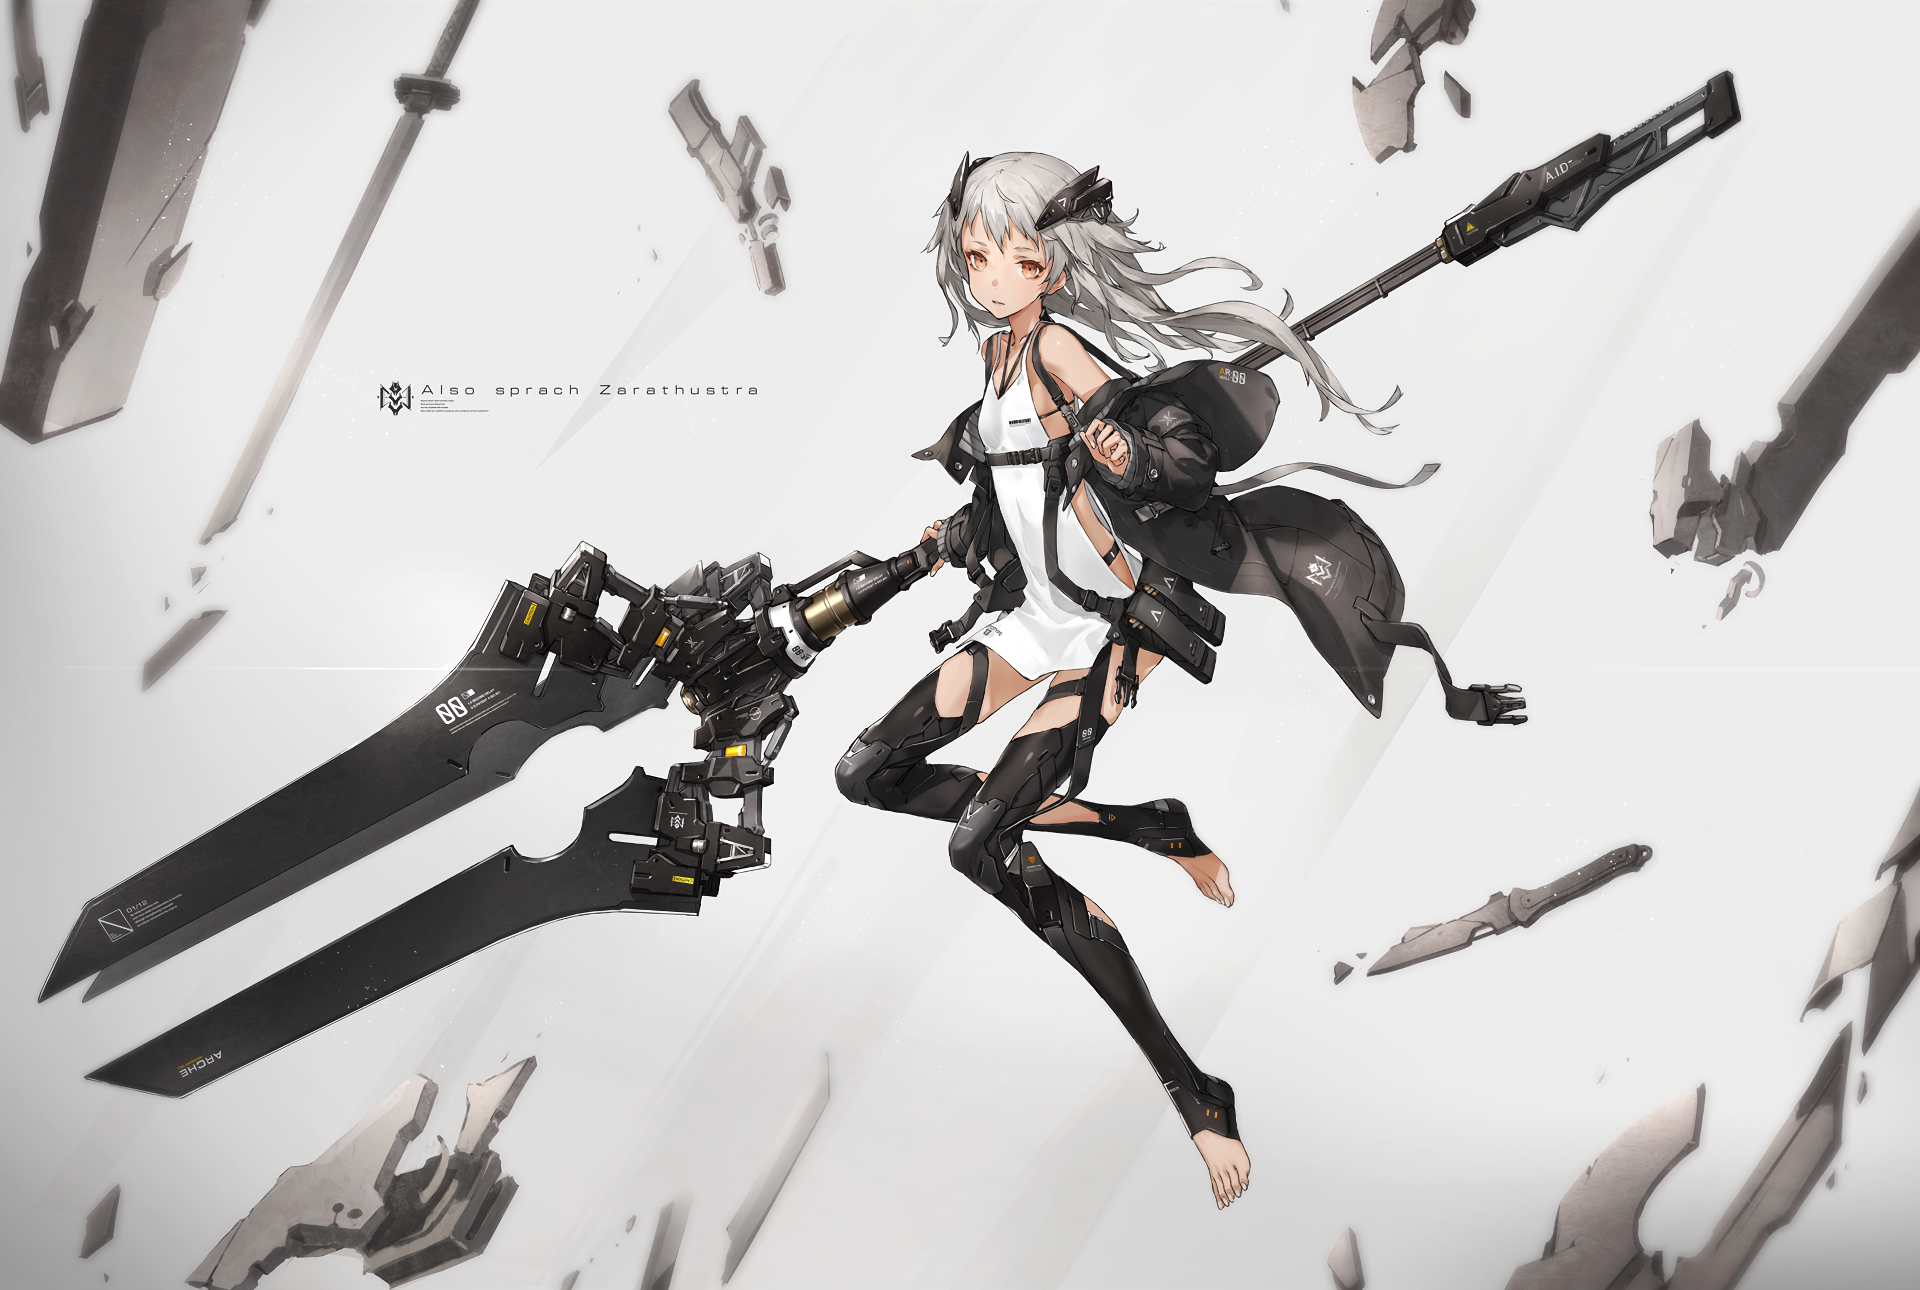 Anime - Original  Girl White Hair Long Hair Weapon Jacket Wallpaper